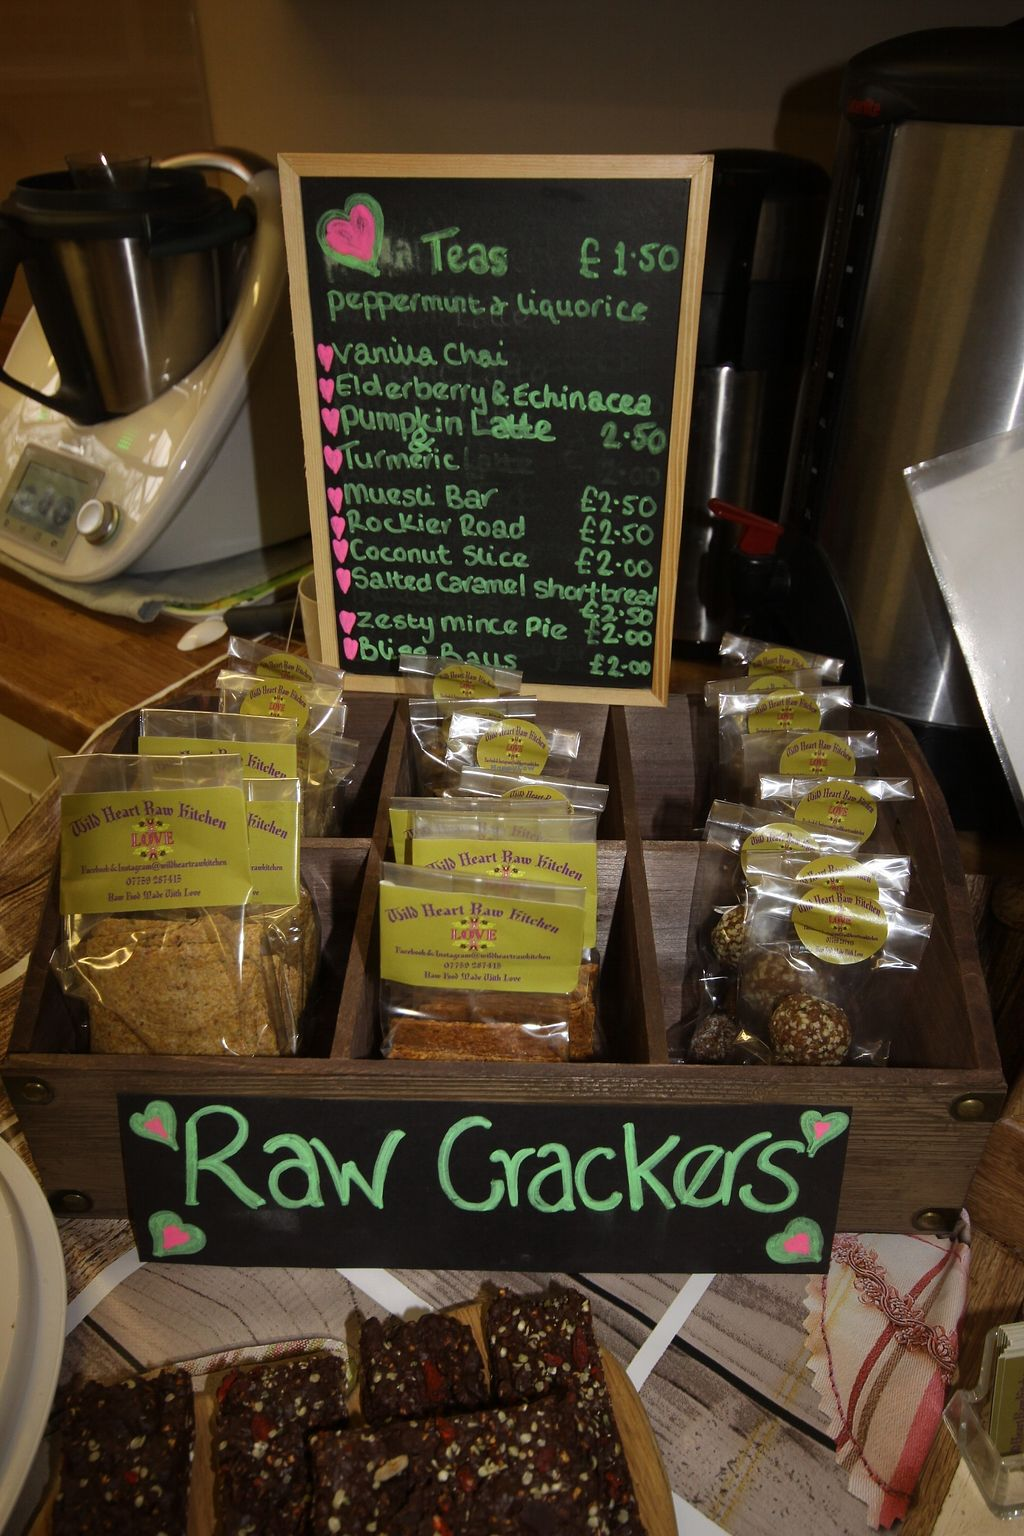 """Photo of Health & Wellbeing  by <a href=""""/members/profile/NJ08"""">NJ08</a> <br/>Raw vegan crackers for sale from the Pop Up Cafe  <br/> January 5, 2018  - <a href='/contact/abuse/image/108603/343350'>Report</a>"""